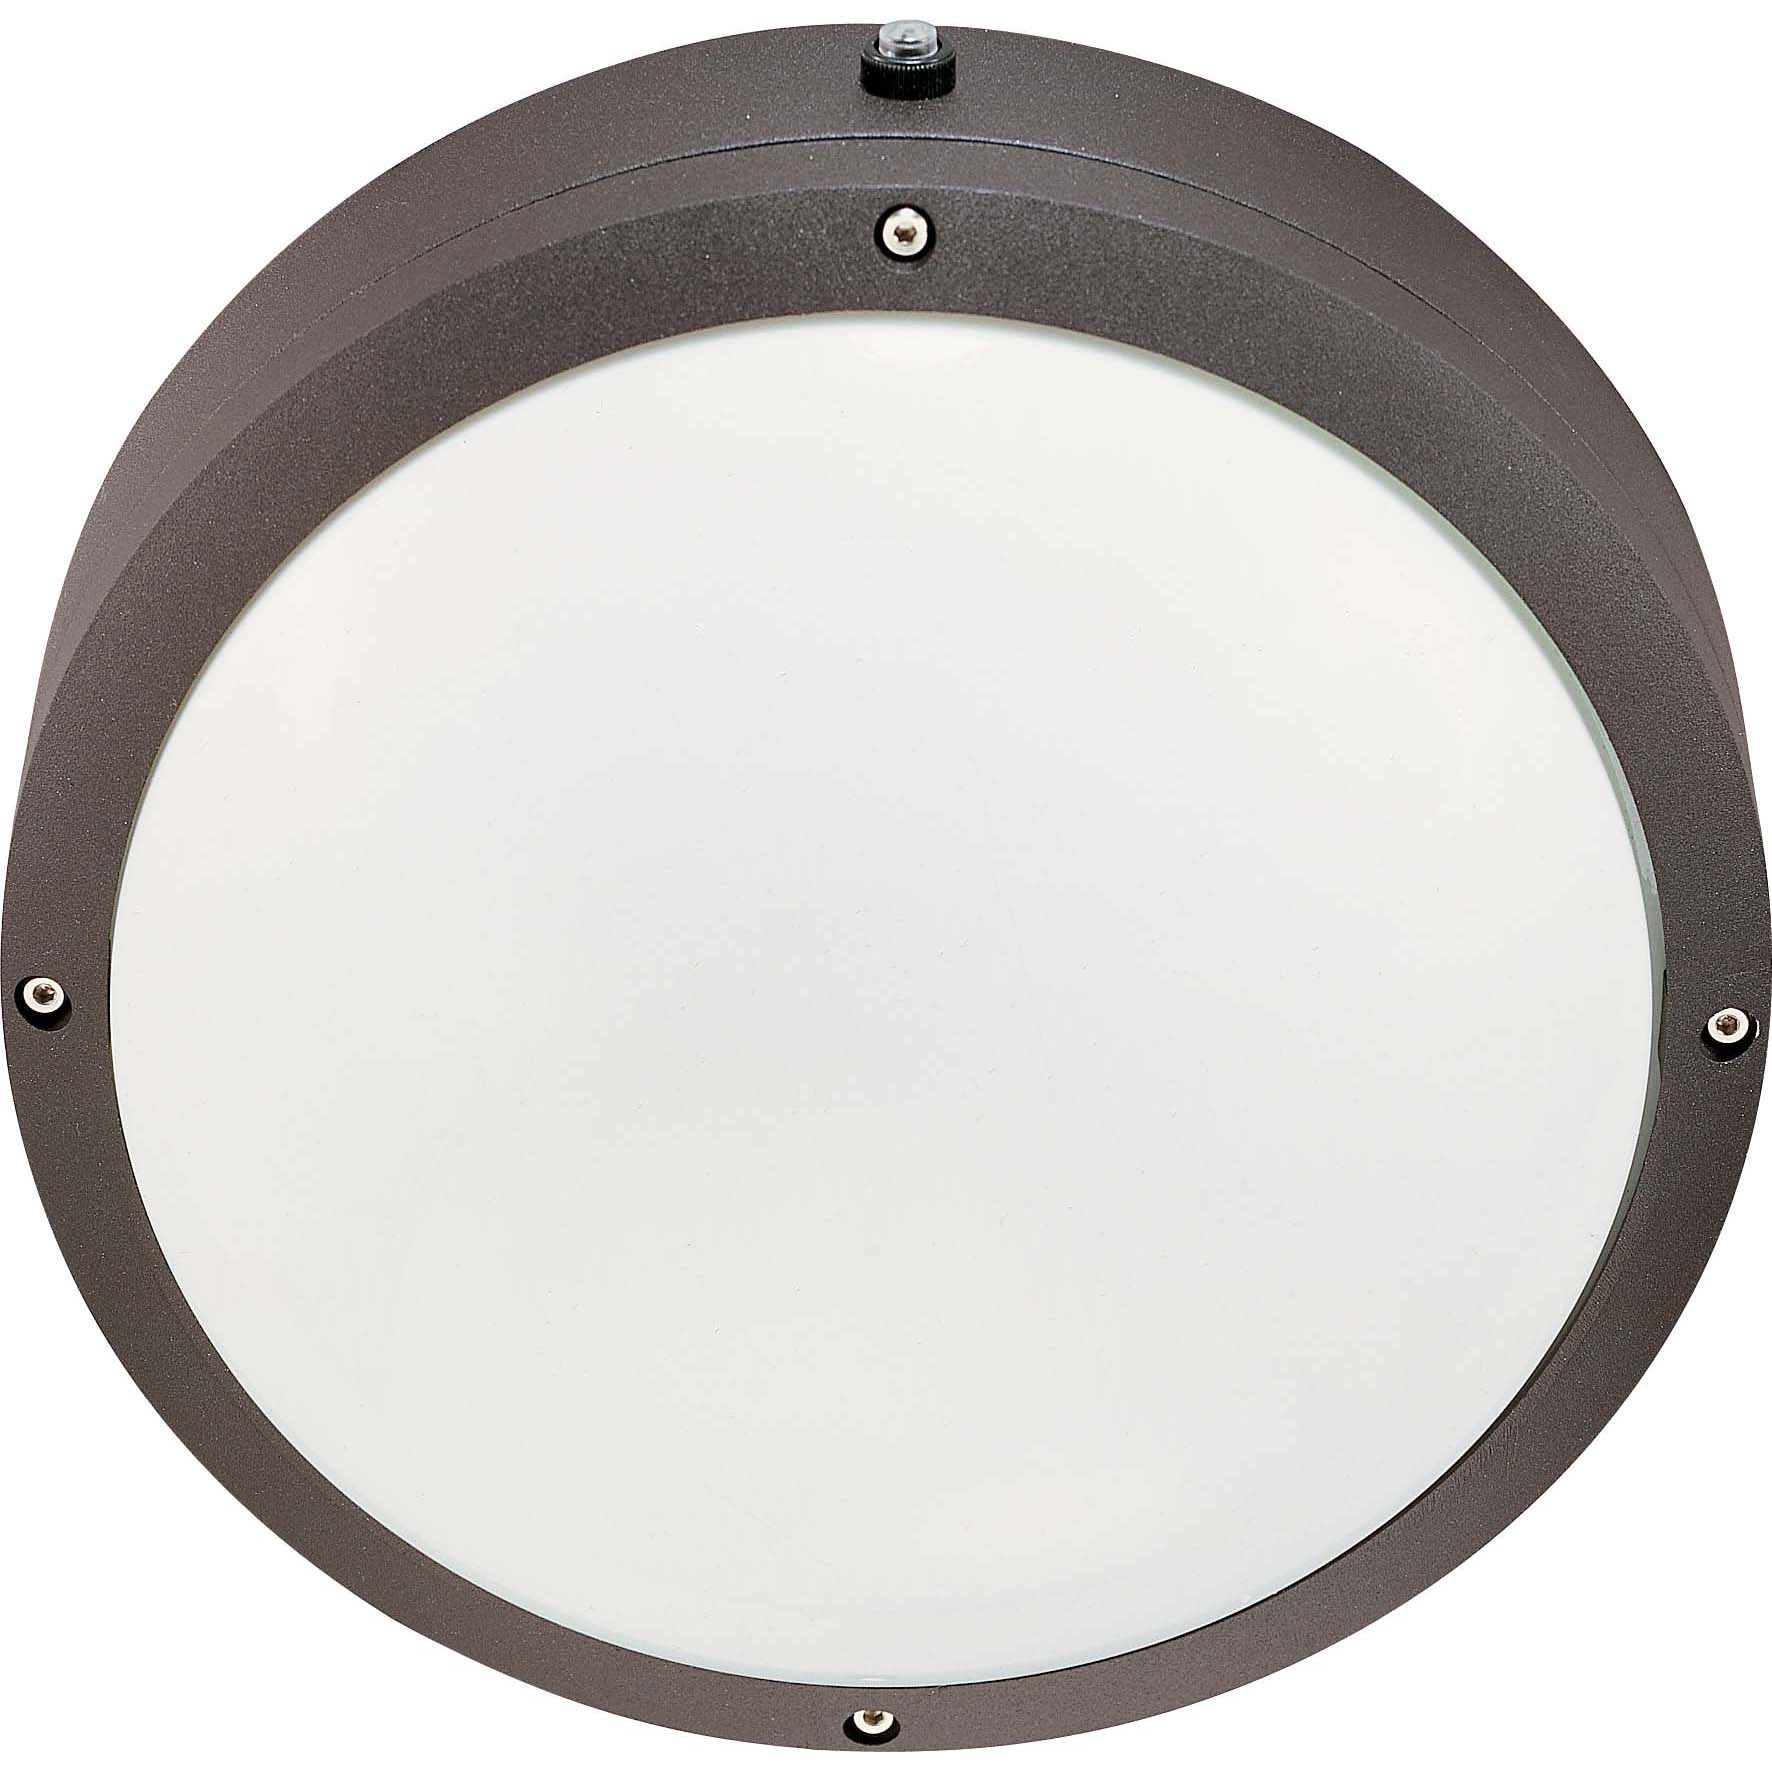 Hudson 2 Light Architectural Bronze With White Lexan Round Wall / Ceiling Fixture